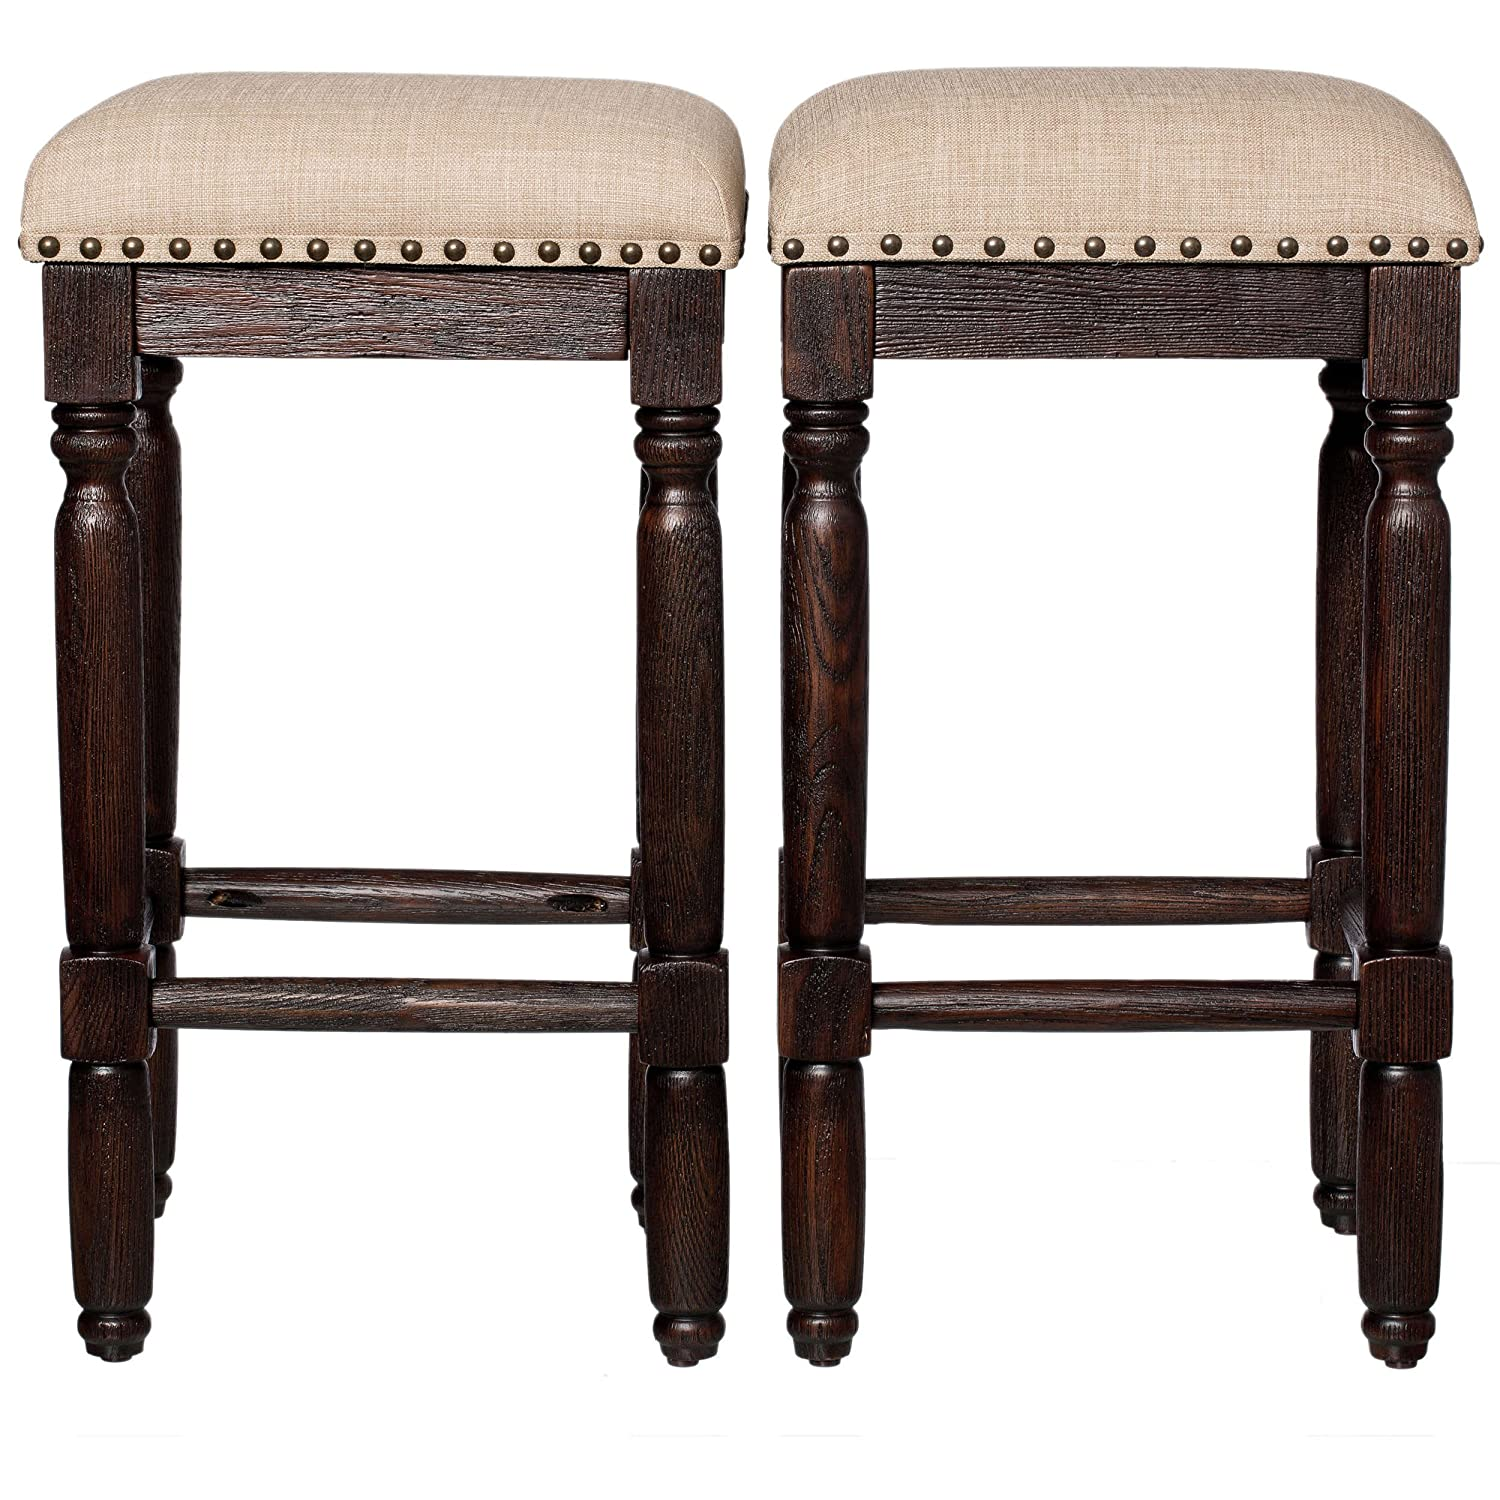 Terrific Wooden Barstools With Cushion Set Of 2 Espresso Wood Finish Backless Counter Height Rustic Vintage Bar Stools Included Mousepad Espresso Linen Beatyapartments Chair Design Images Beatyapartmentscom